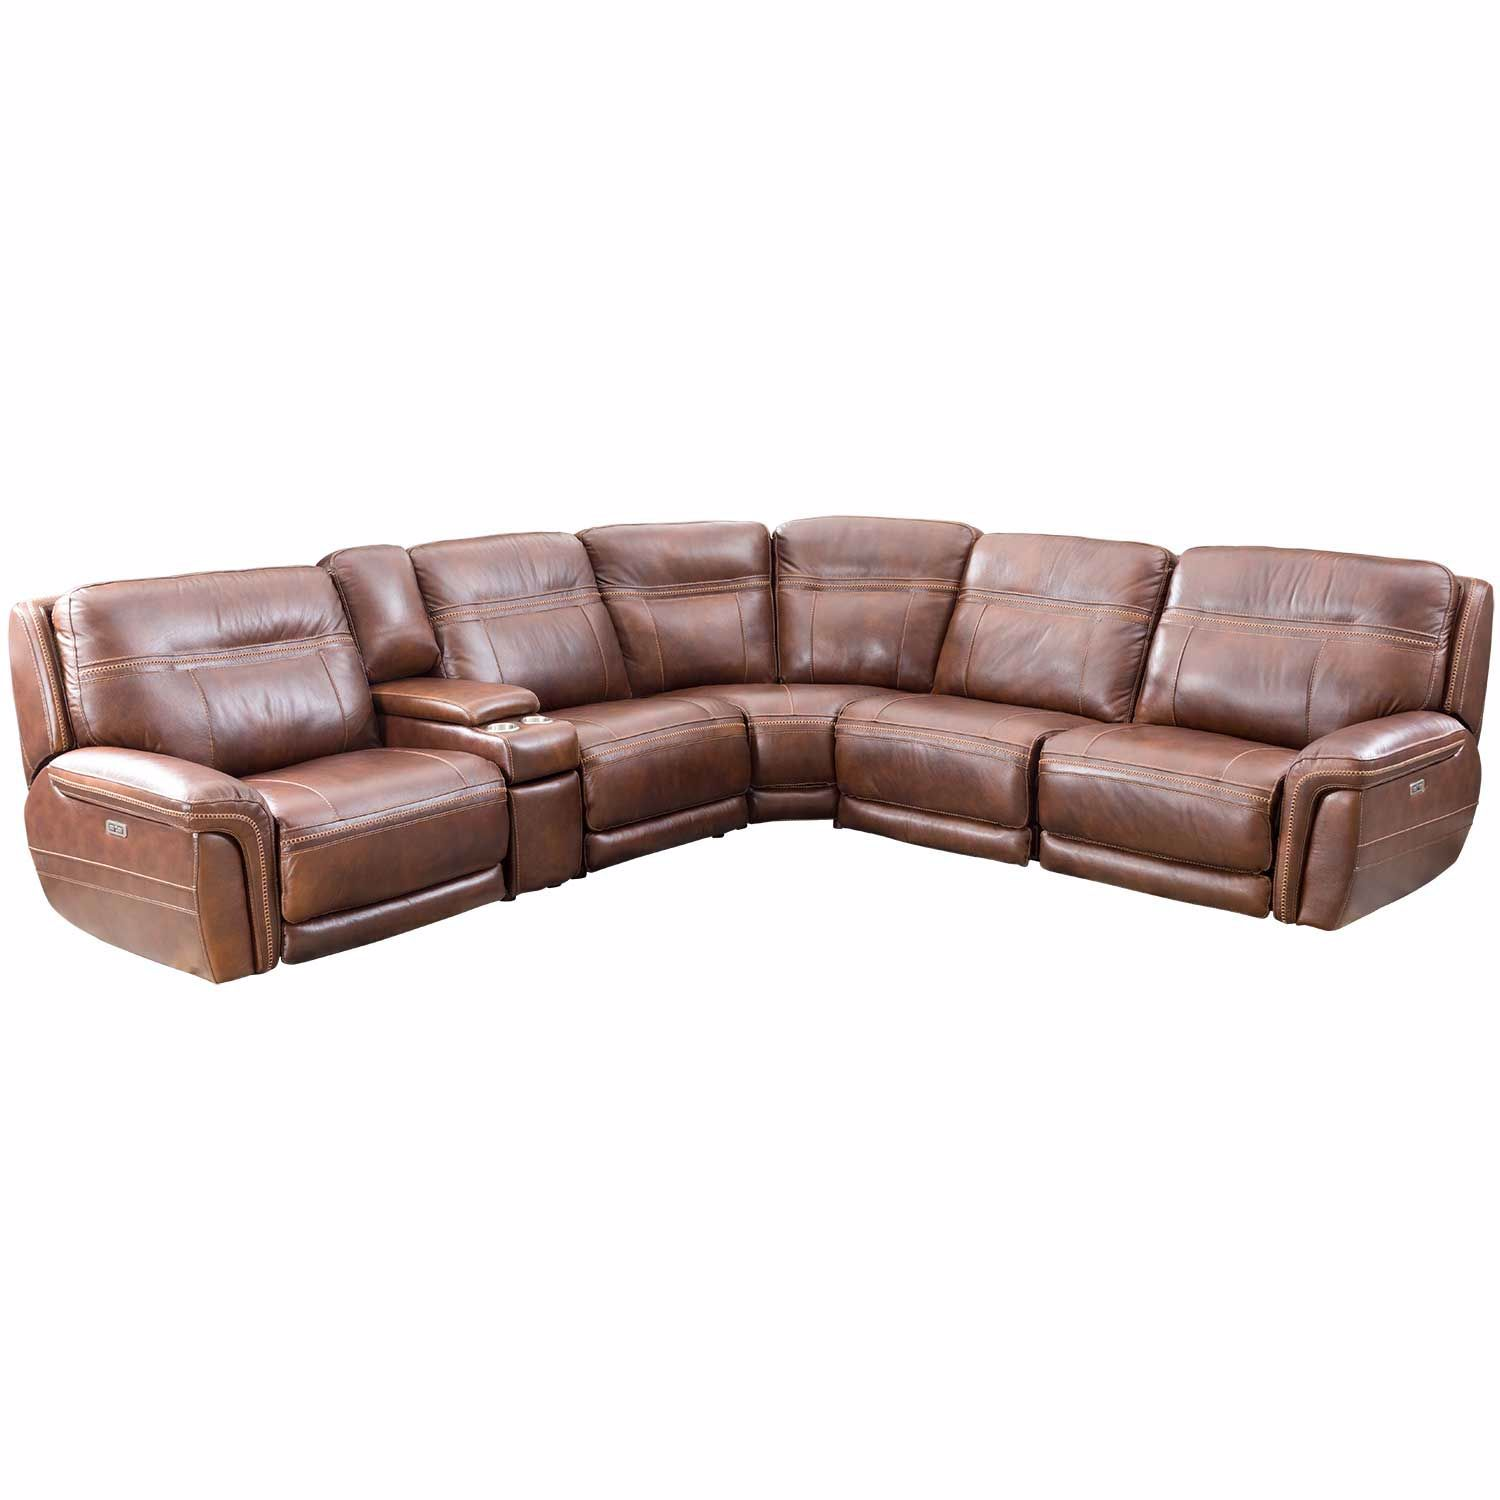 Surprising Dean 6 Piece Leather Power Reclining Sectional With Adjustable Headrests Bralicious Painted Fabric Chair Ideas Braliciousco